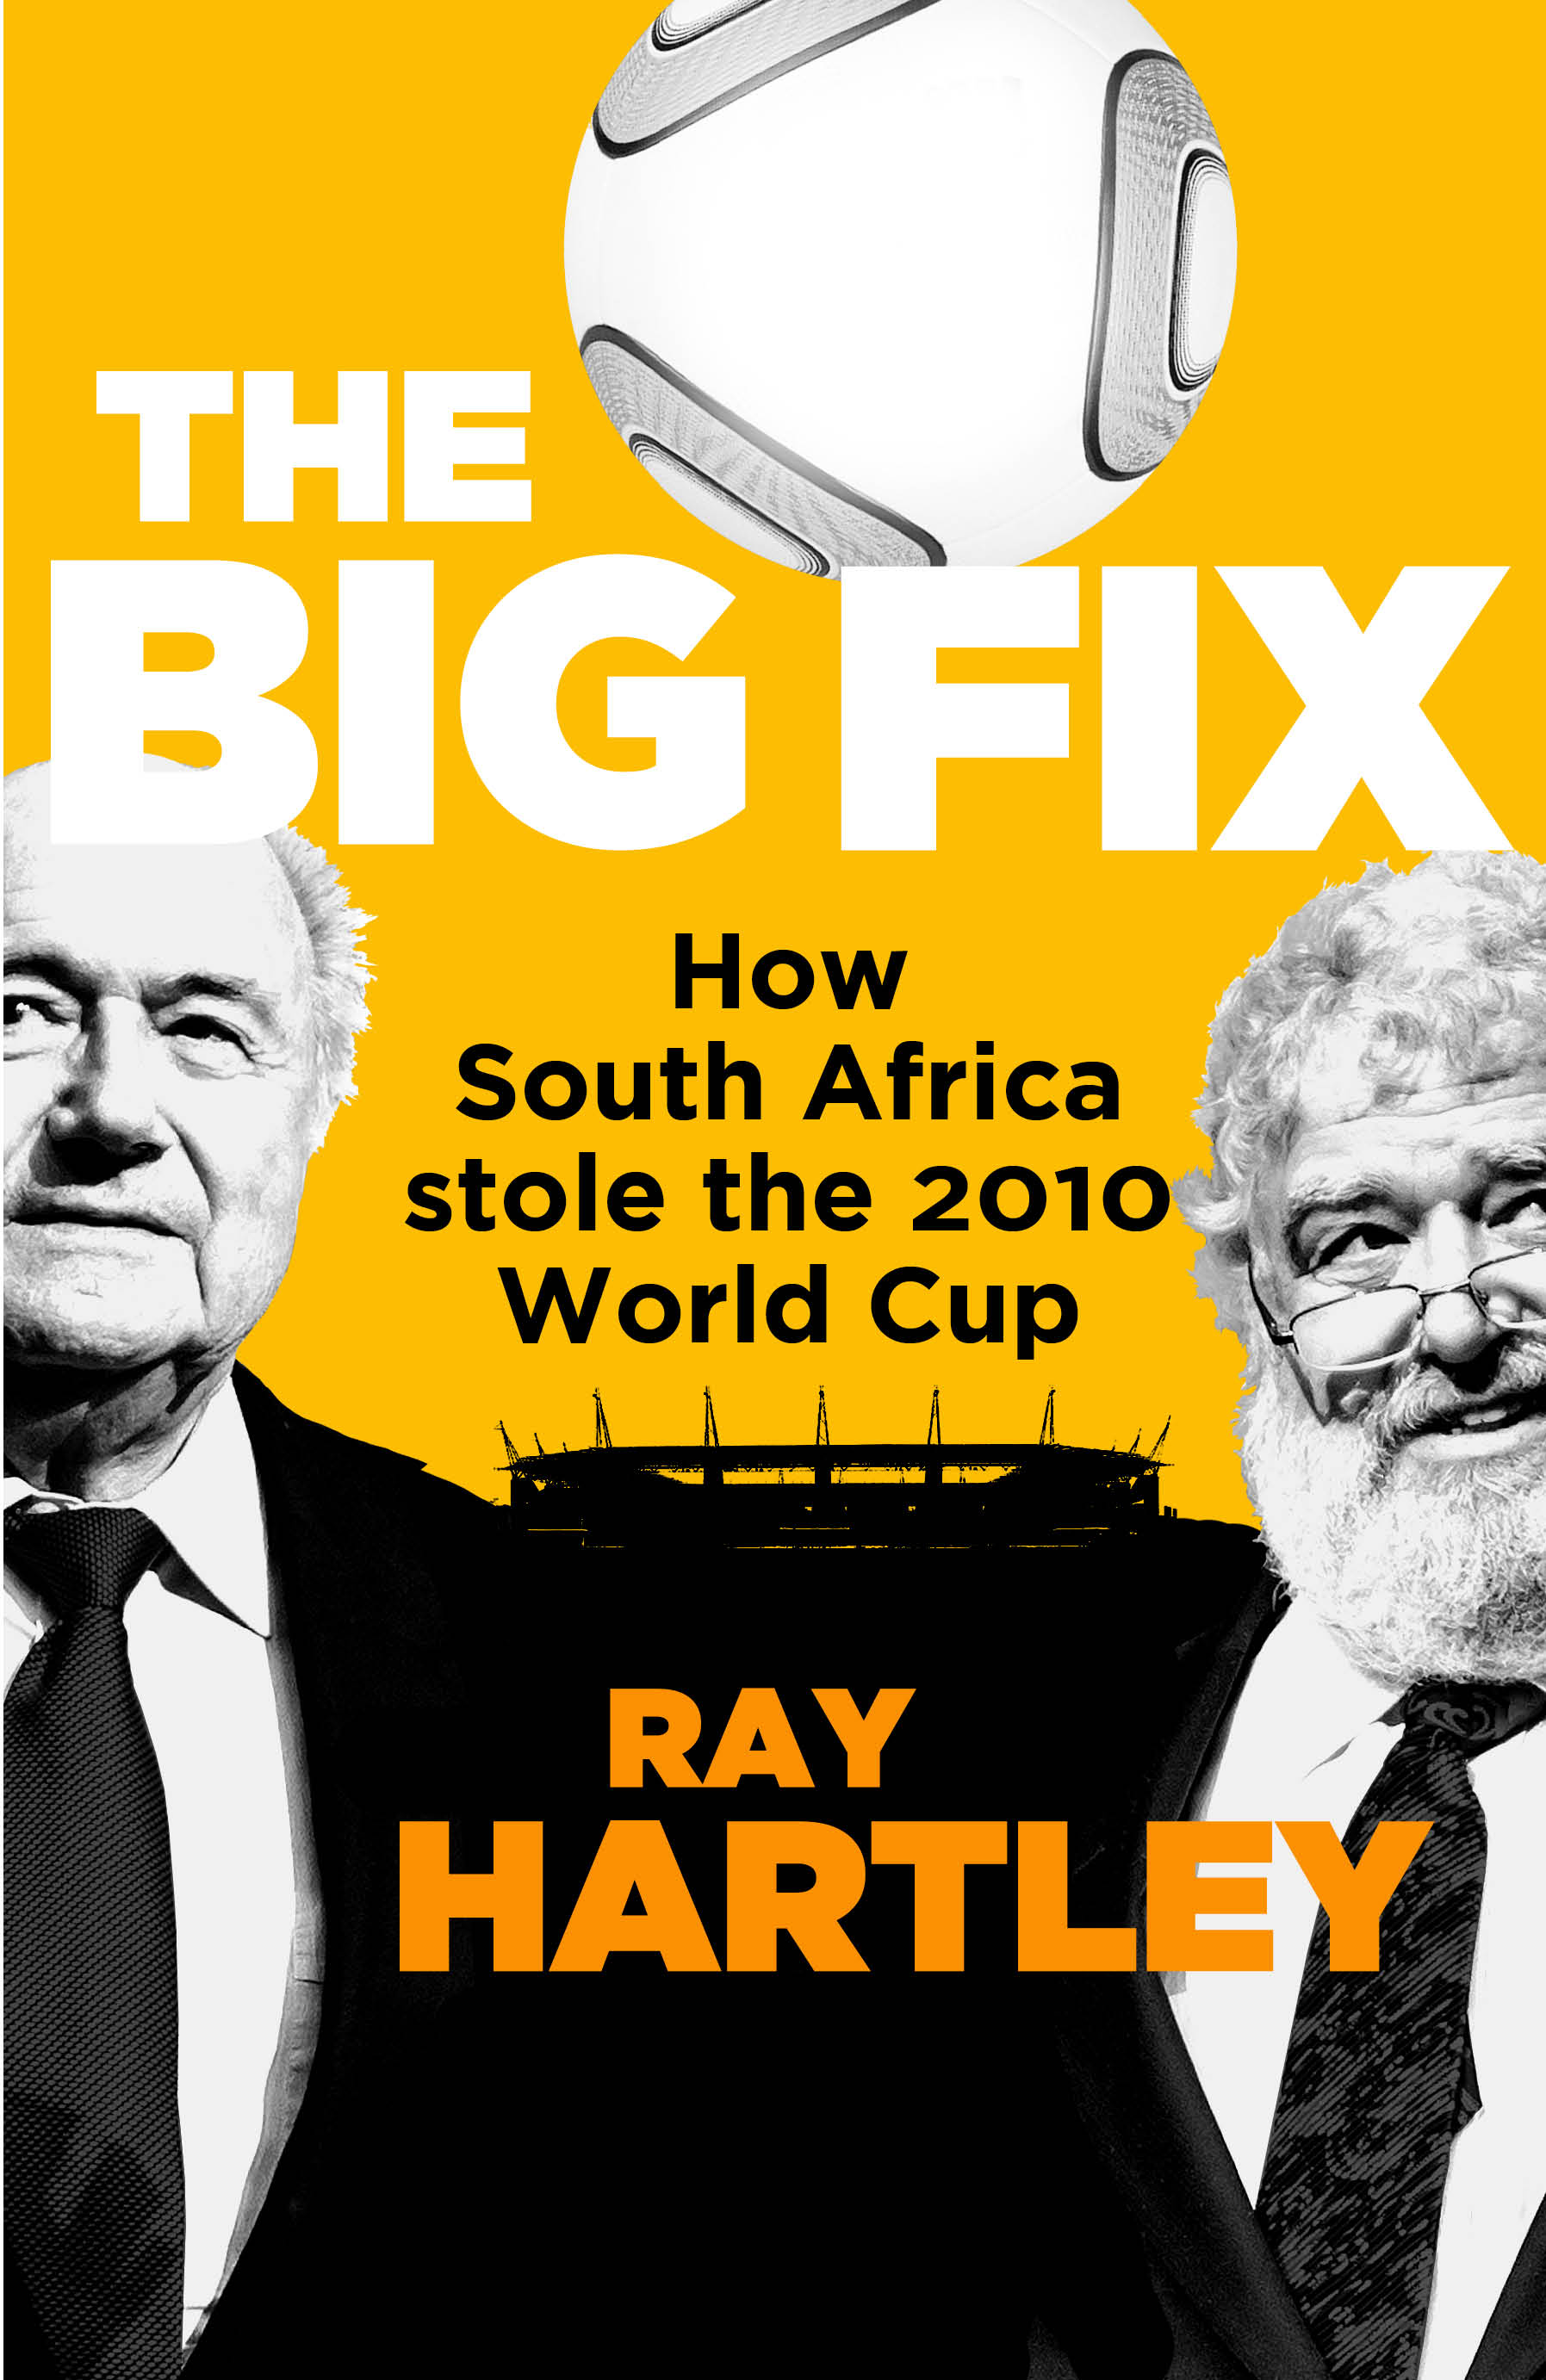 The Big Fix by Ray Hartley